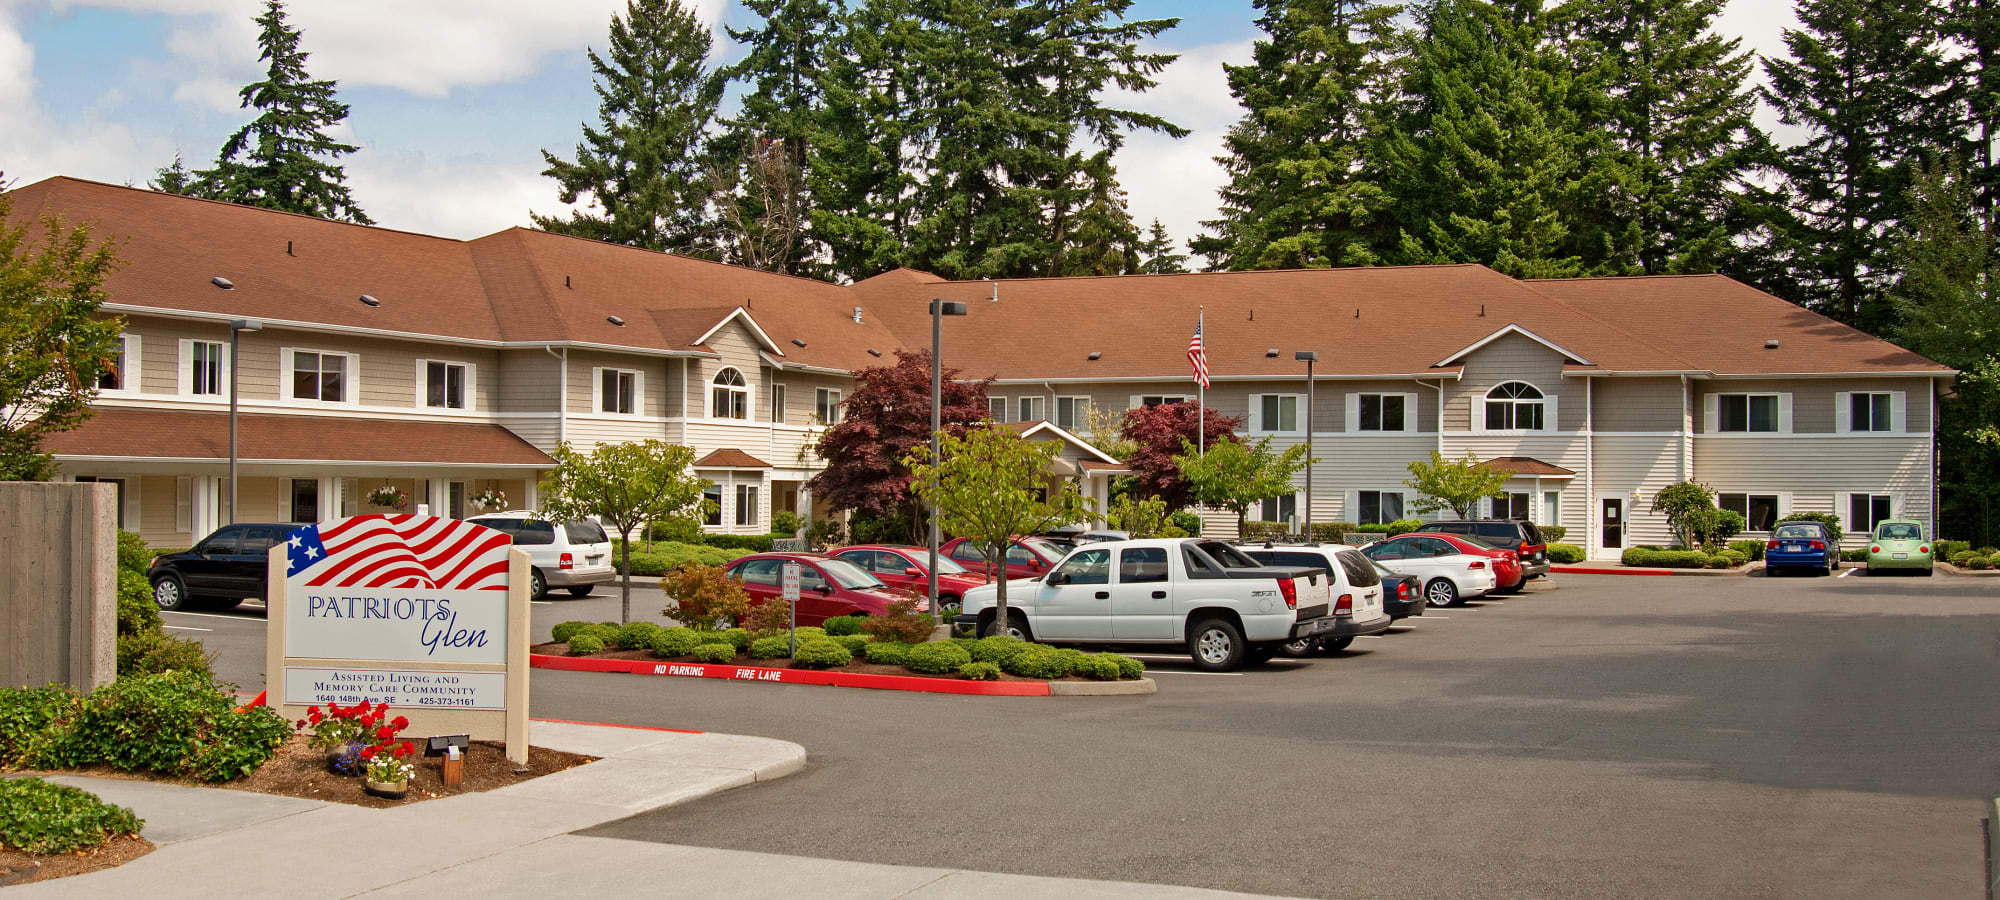 Patriots Glen offers senior living in Bellevue, Washington.